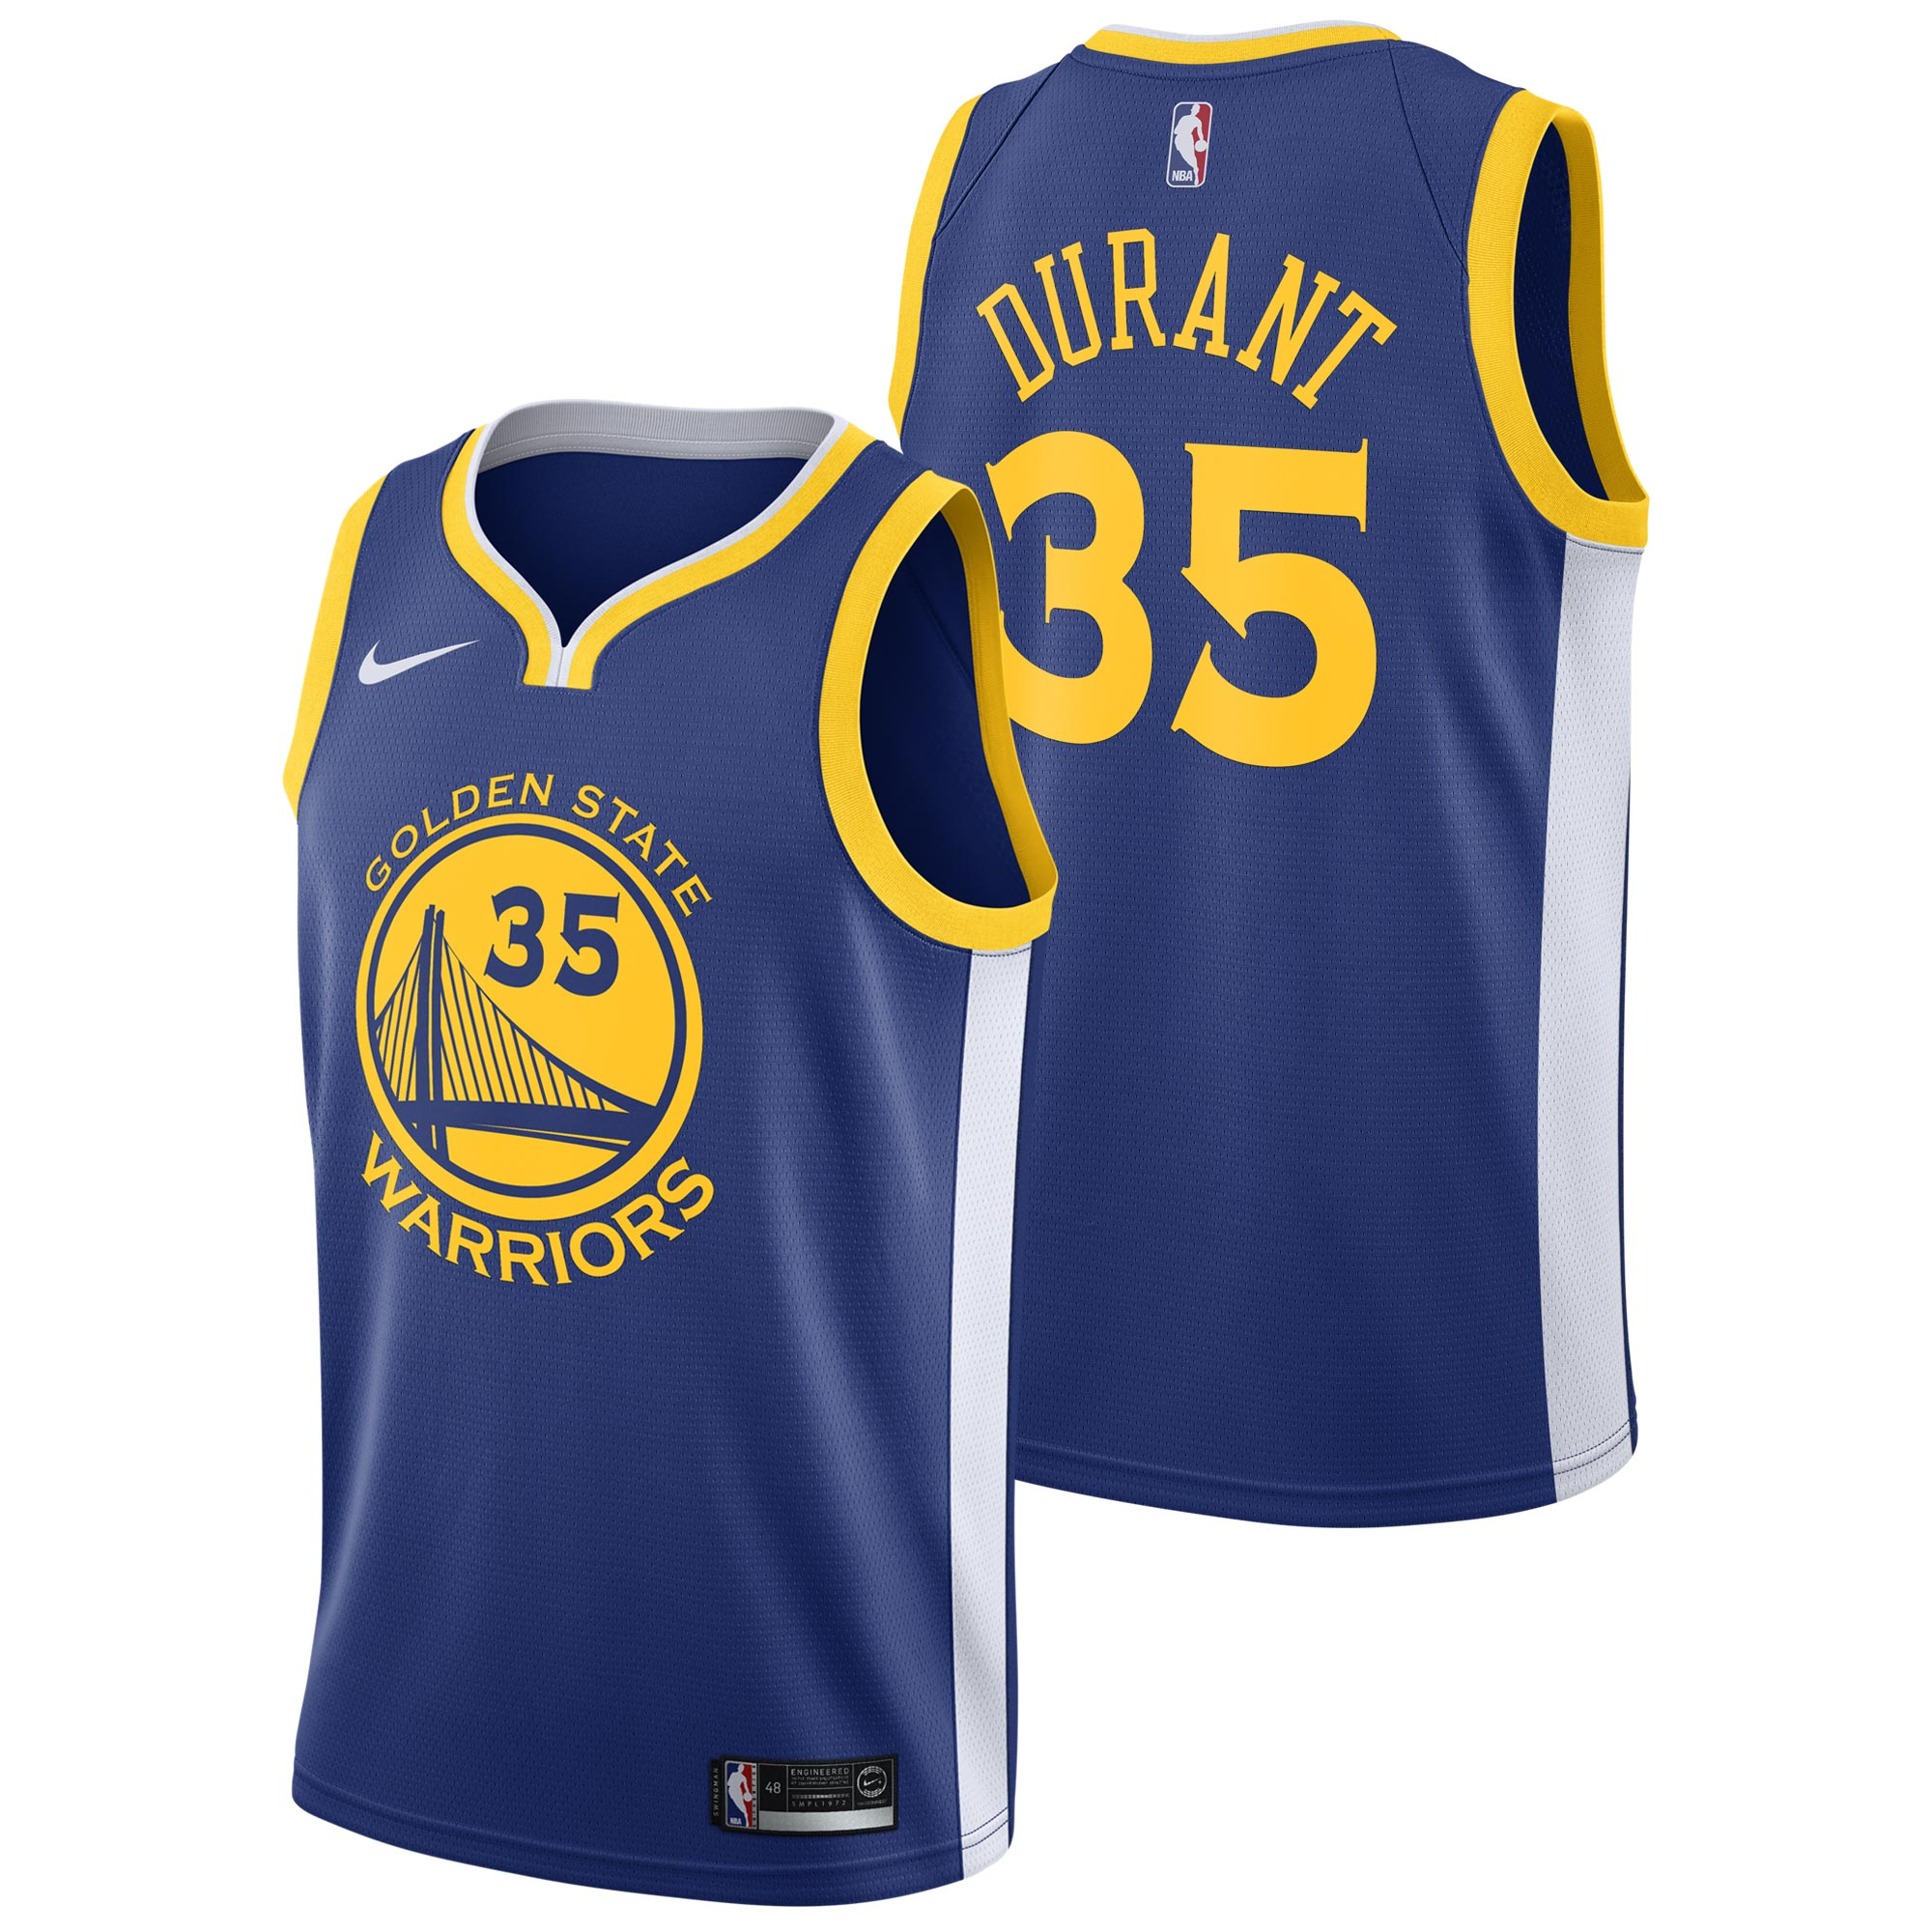 golden-state-warriors-nike-icon-swingman-jersey-kevin-durant-mens_ss4_p-11888838+u-s1vgw7of23omoy7gnzw0+v-744ad0a1f29745c9a06d63fe26fe105c